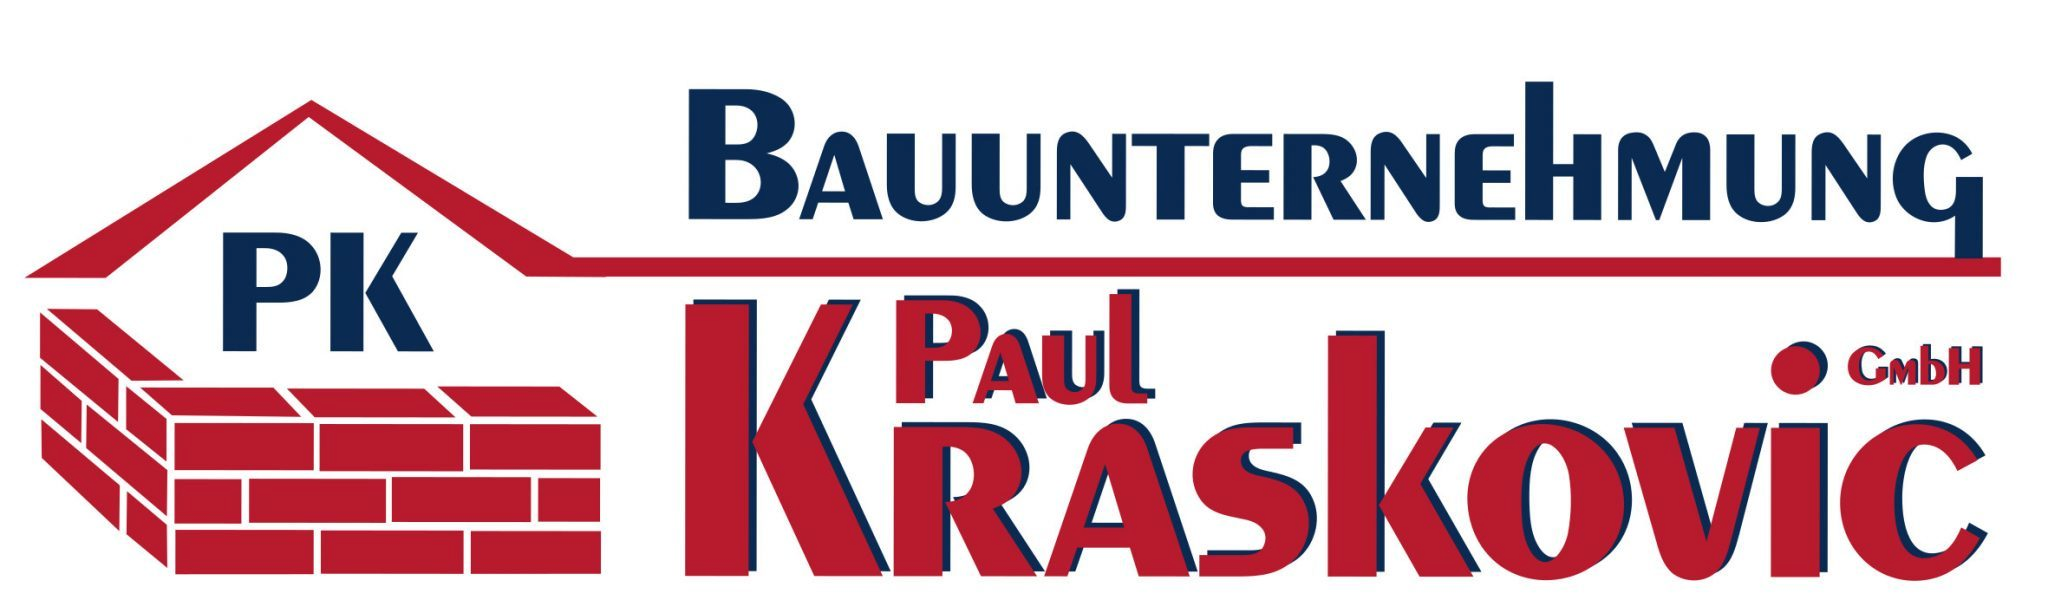 Paul Kraskovic GmbH